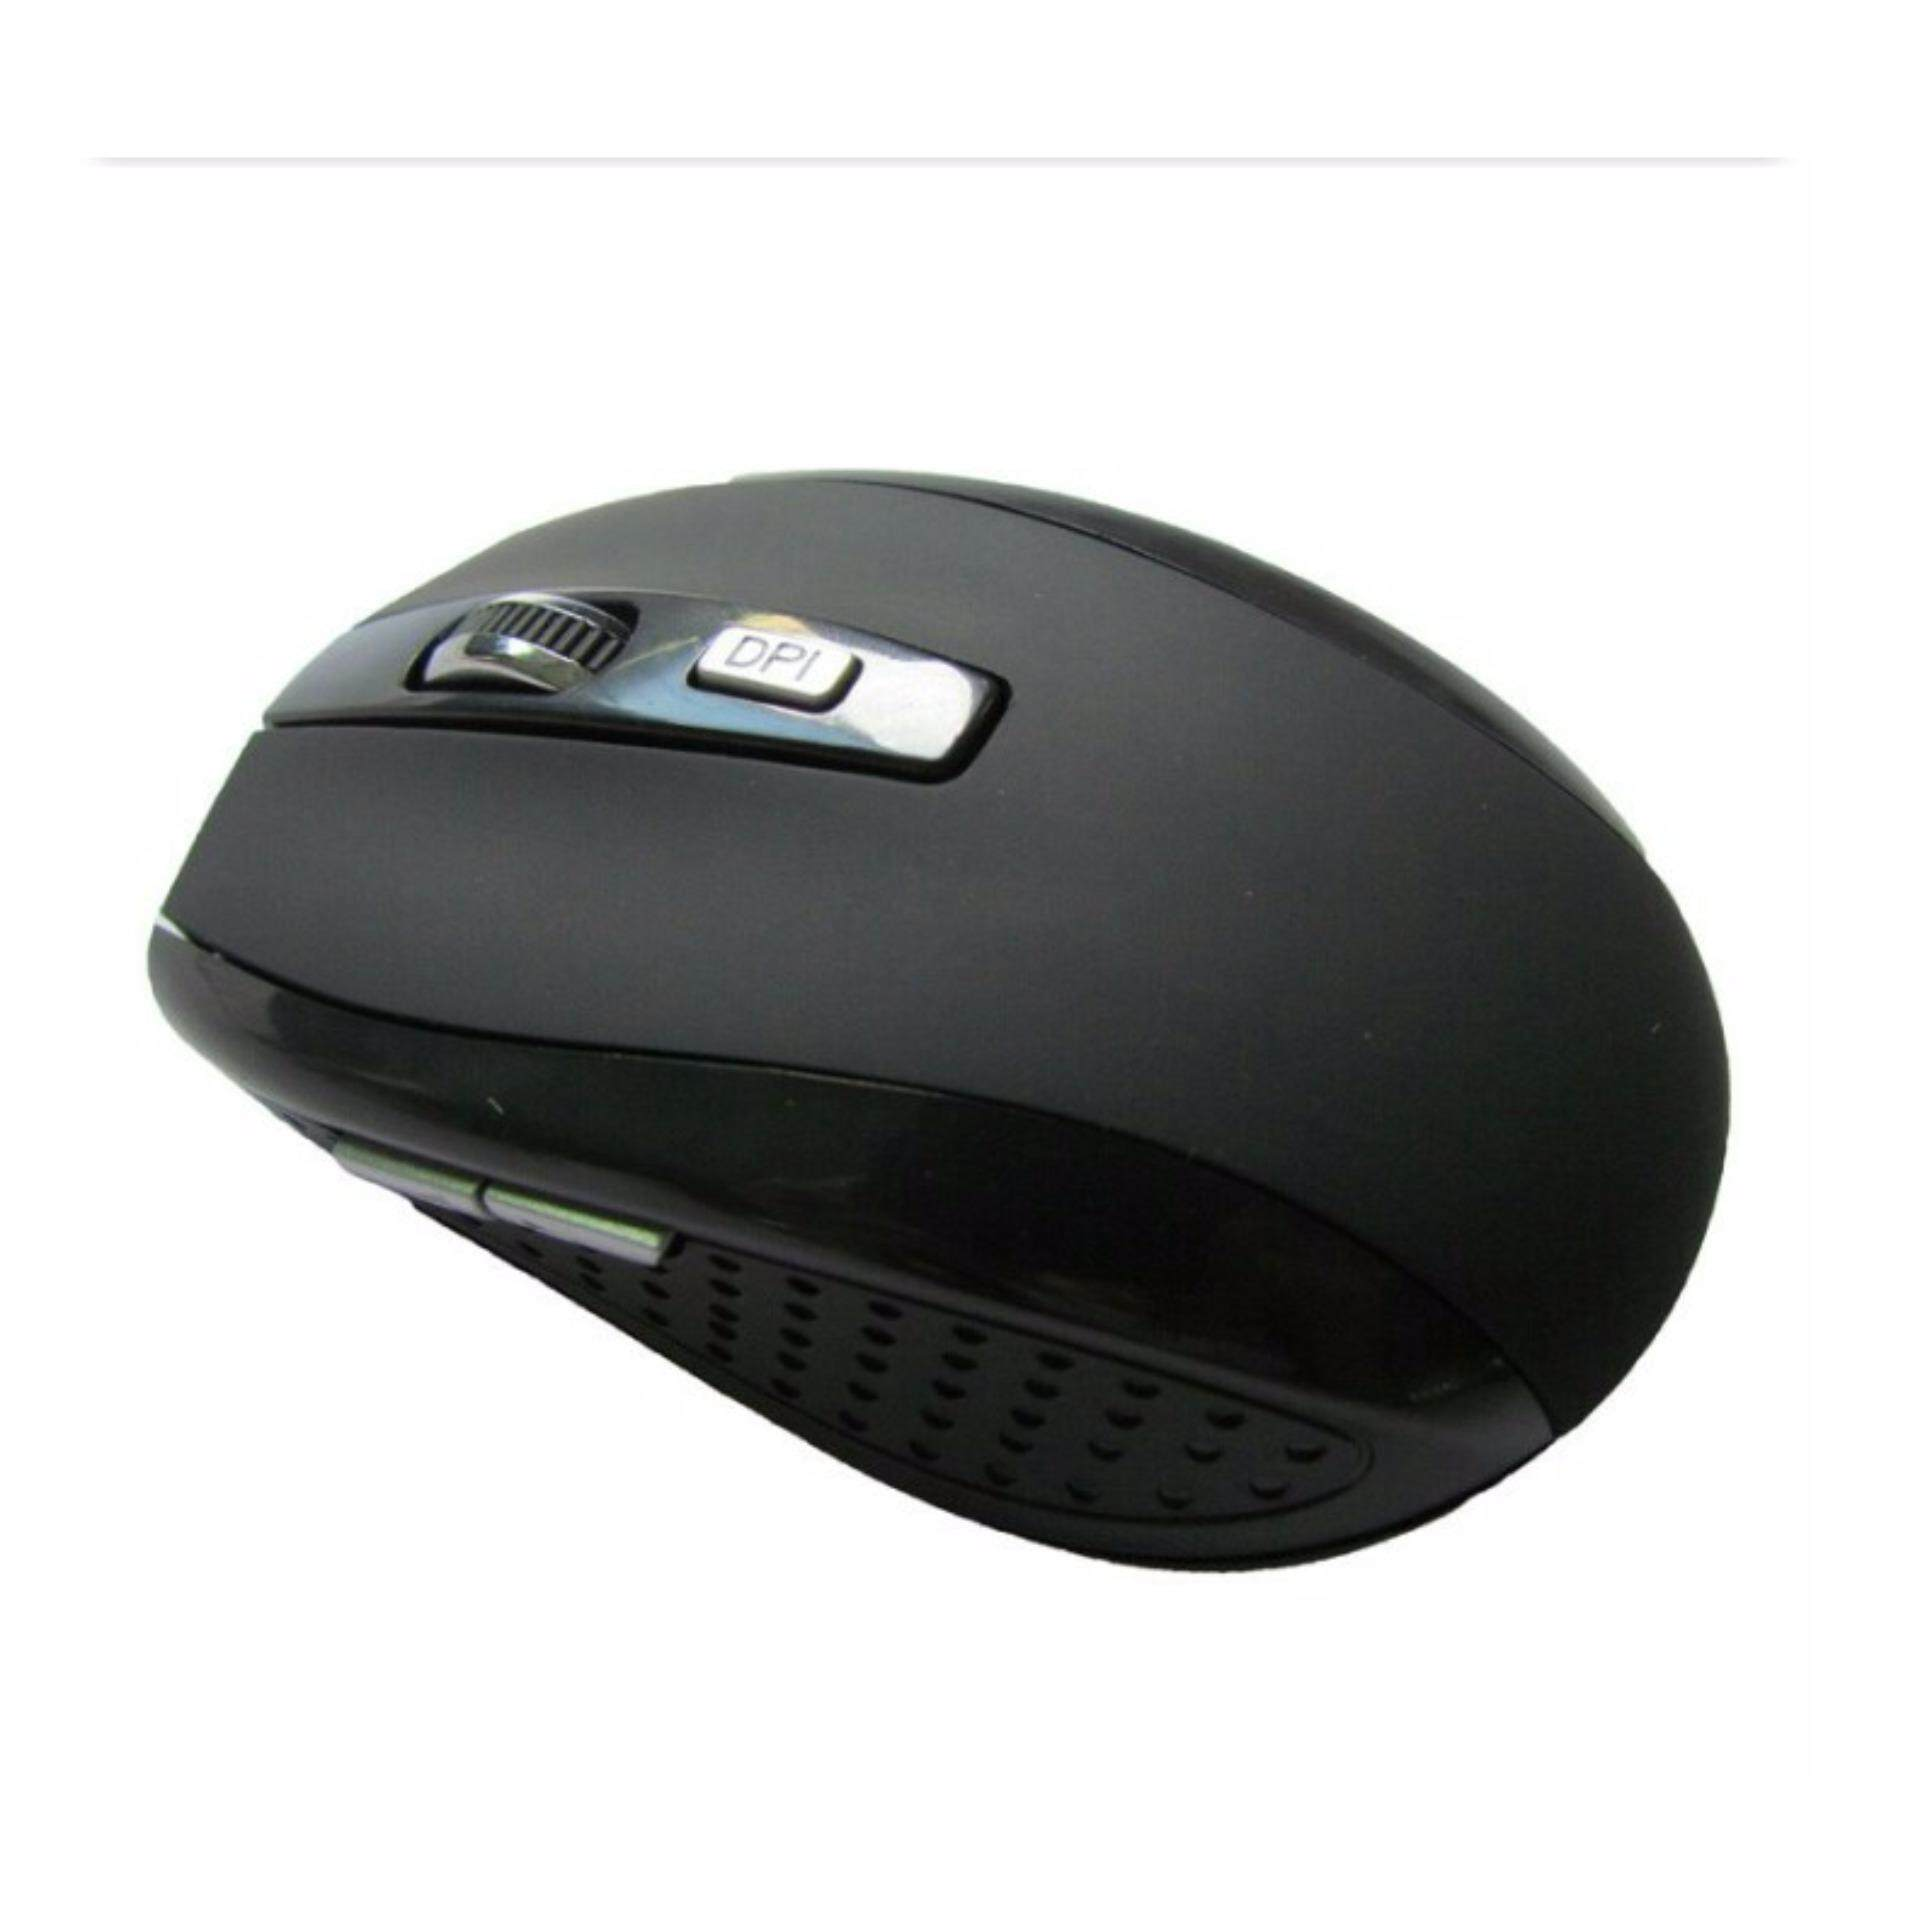 2.4 ghz wireless Bluetooth mouse for PC laptop (with battery) Malaysia